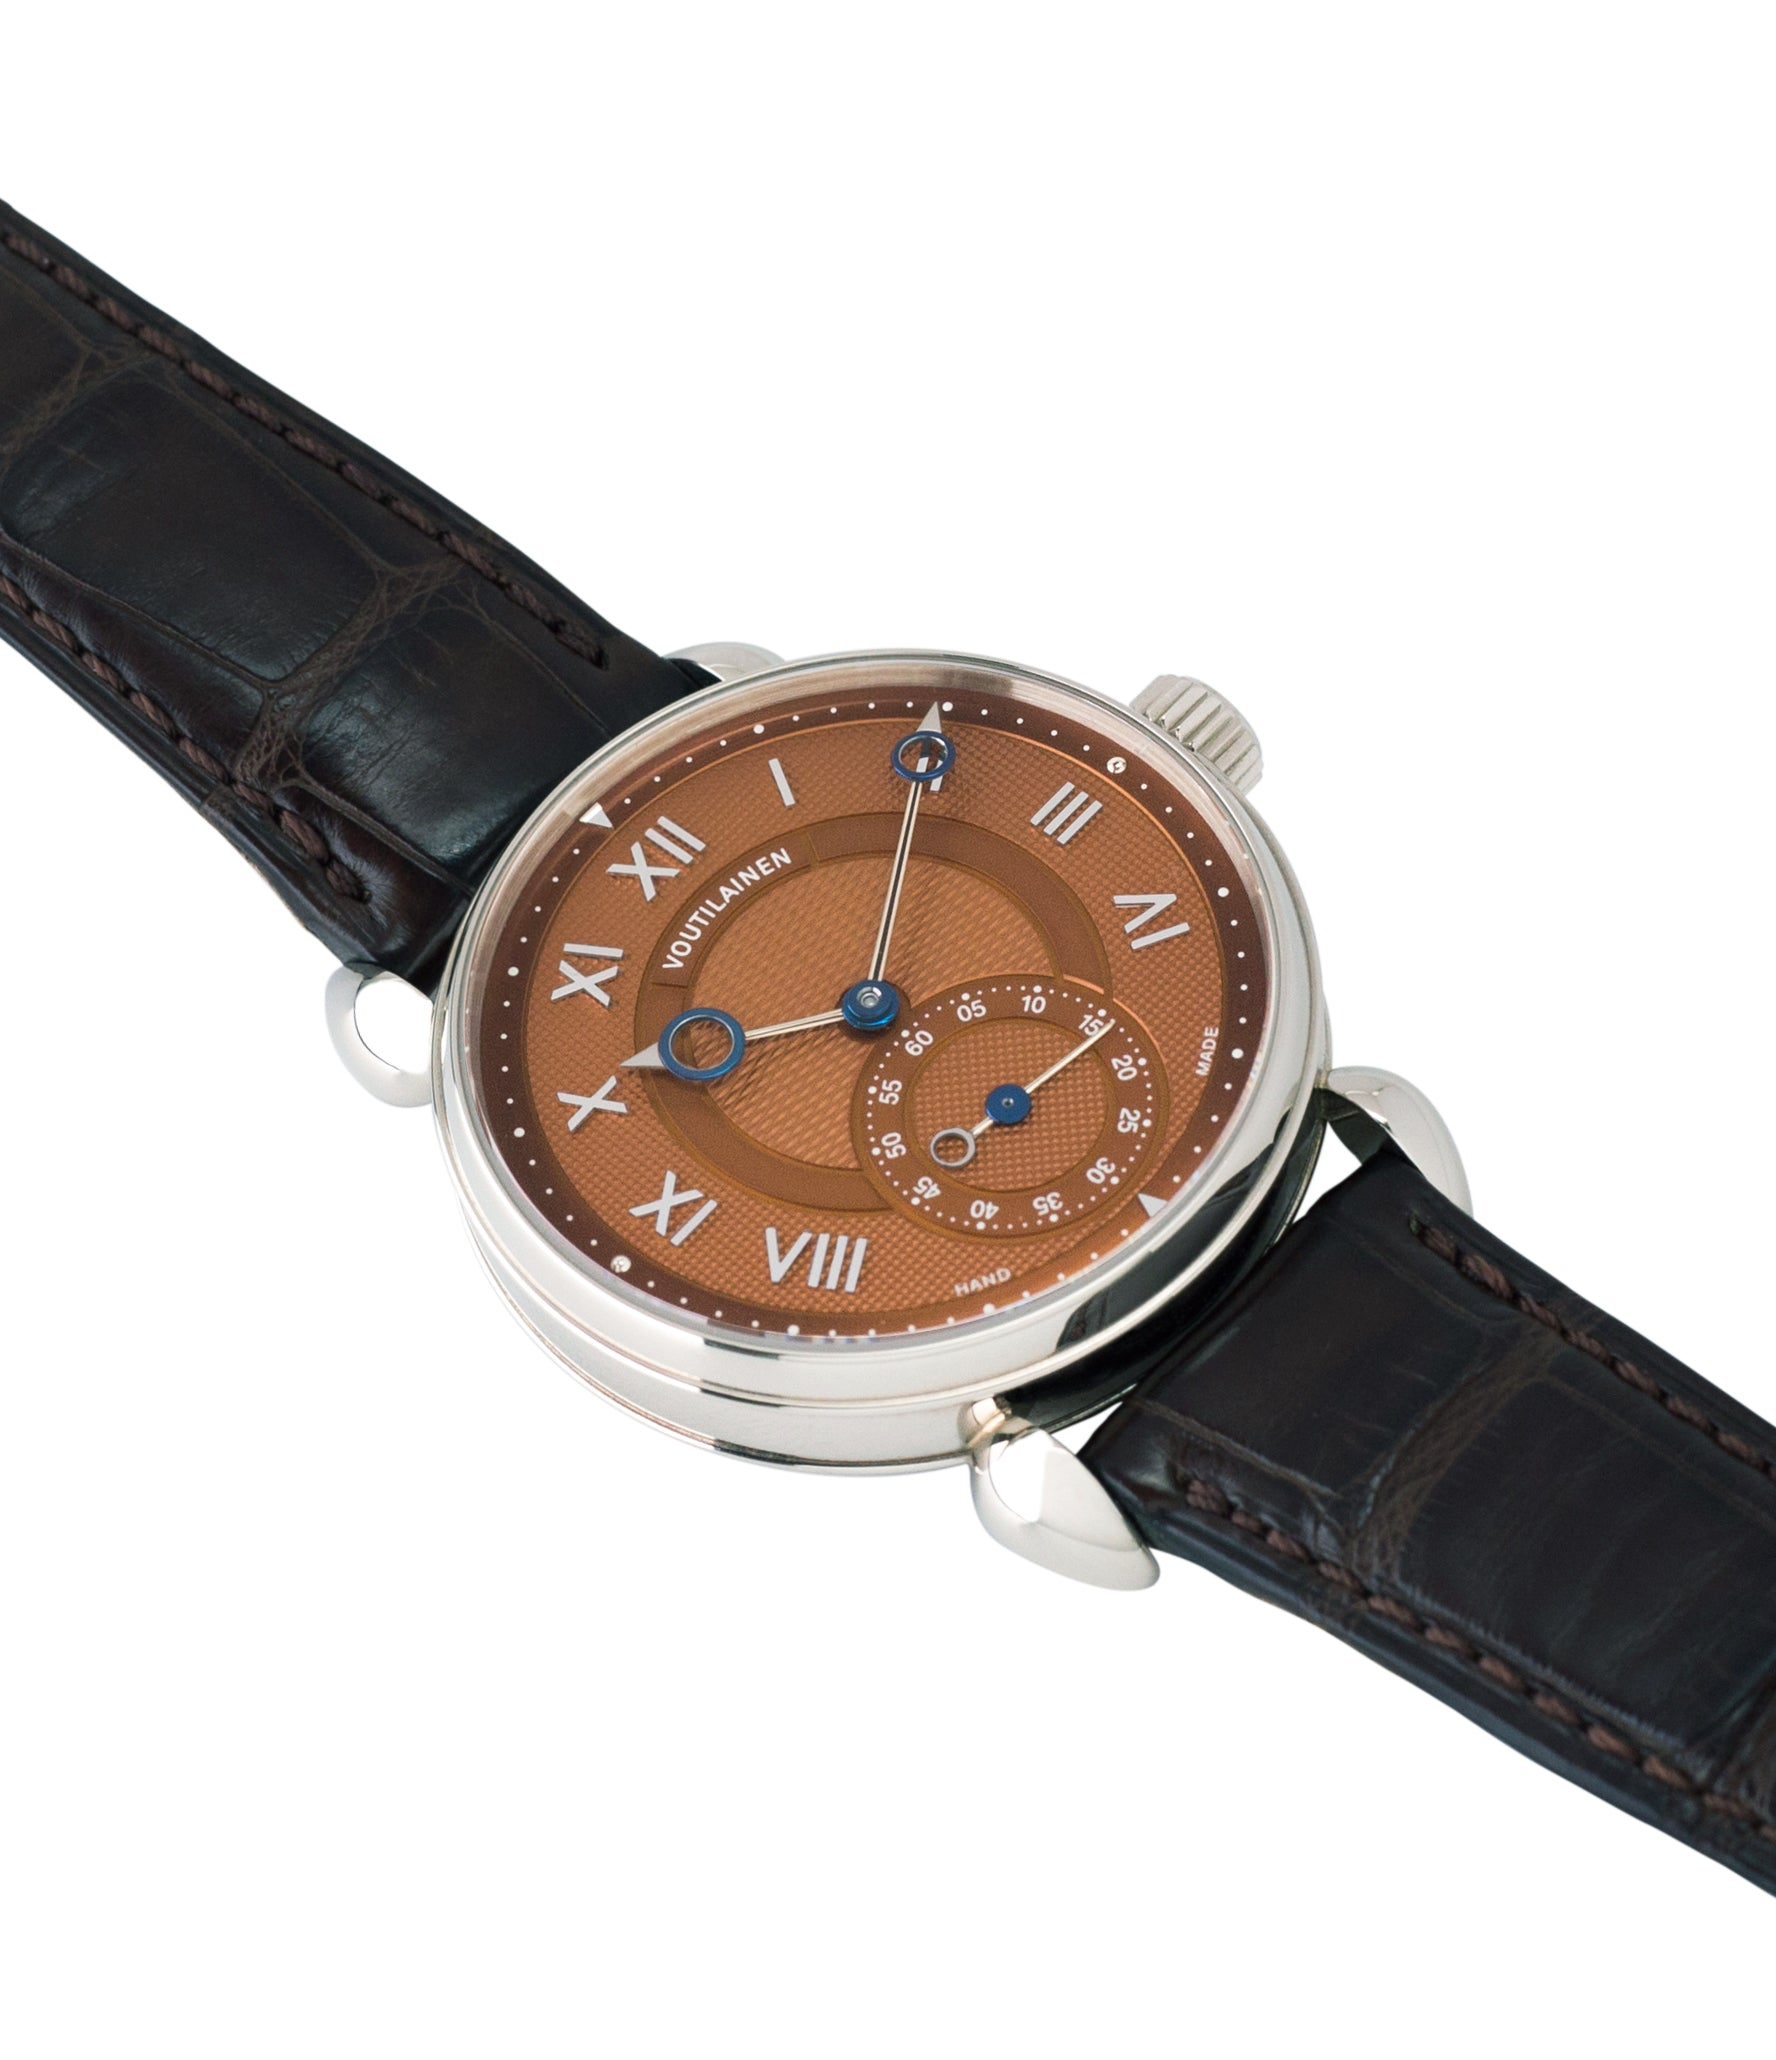 selling Kari Voutilainen Observatoire Limited Edition rare brown dial watch online at A Collected Man London specialist endorsed seller of pre-owned independent watchmakers